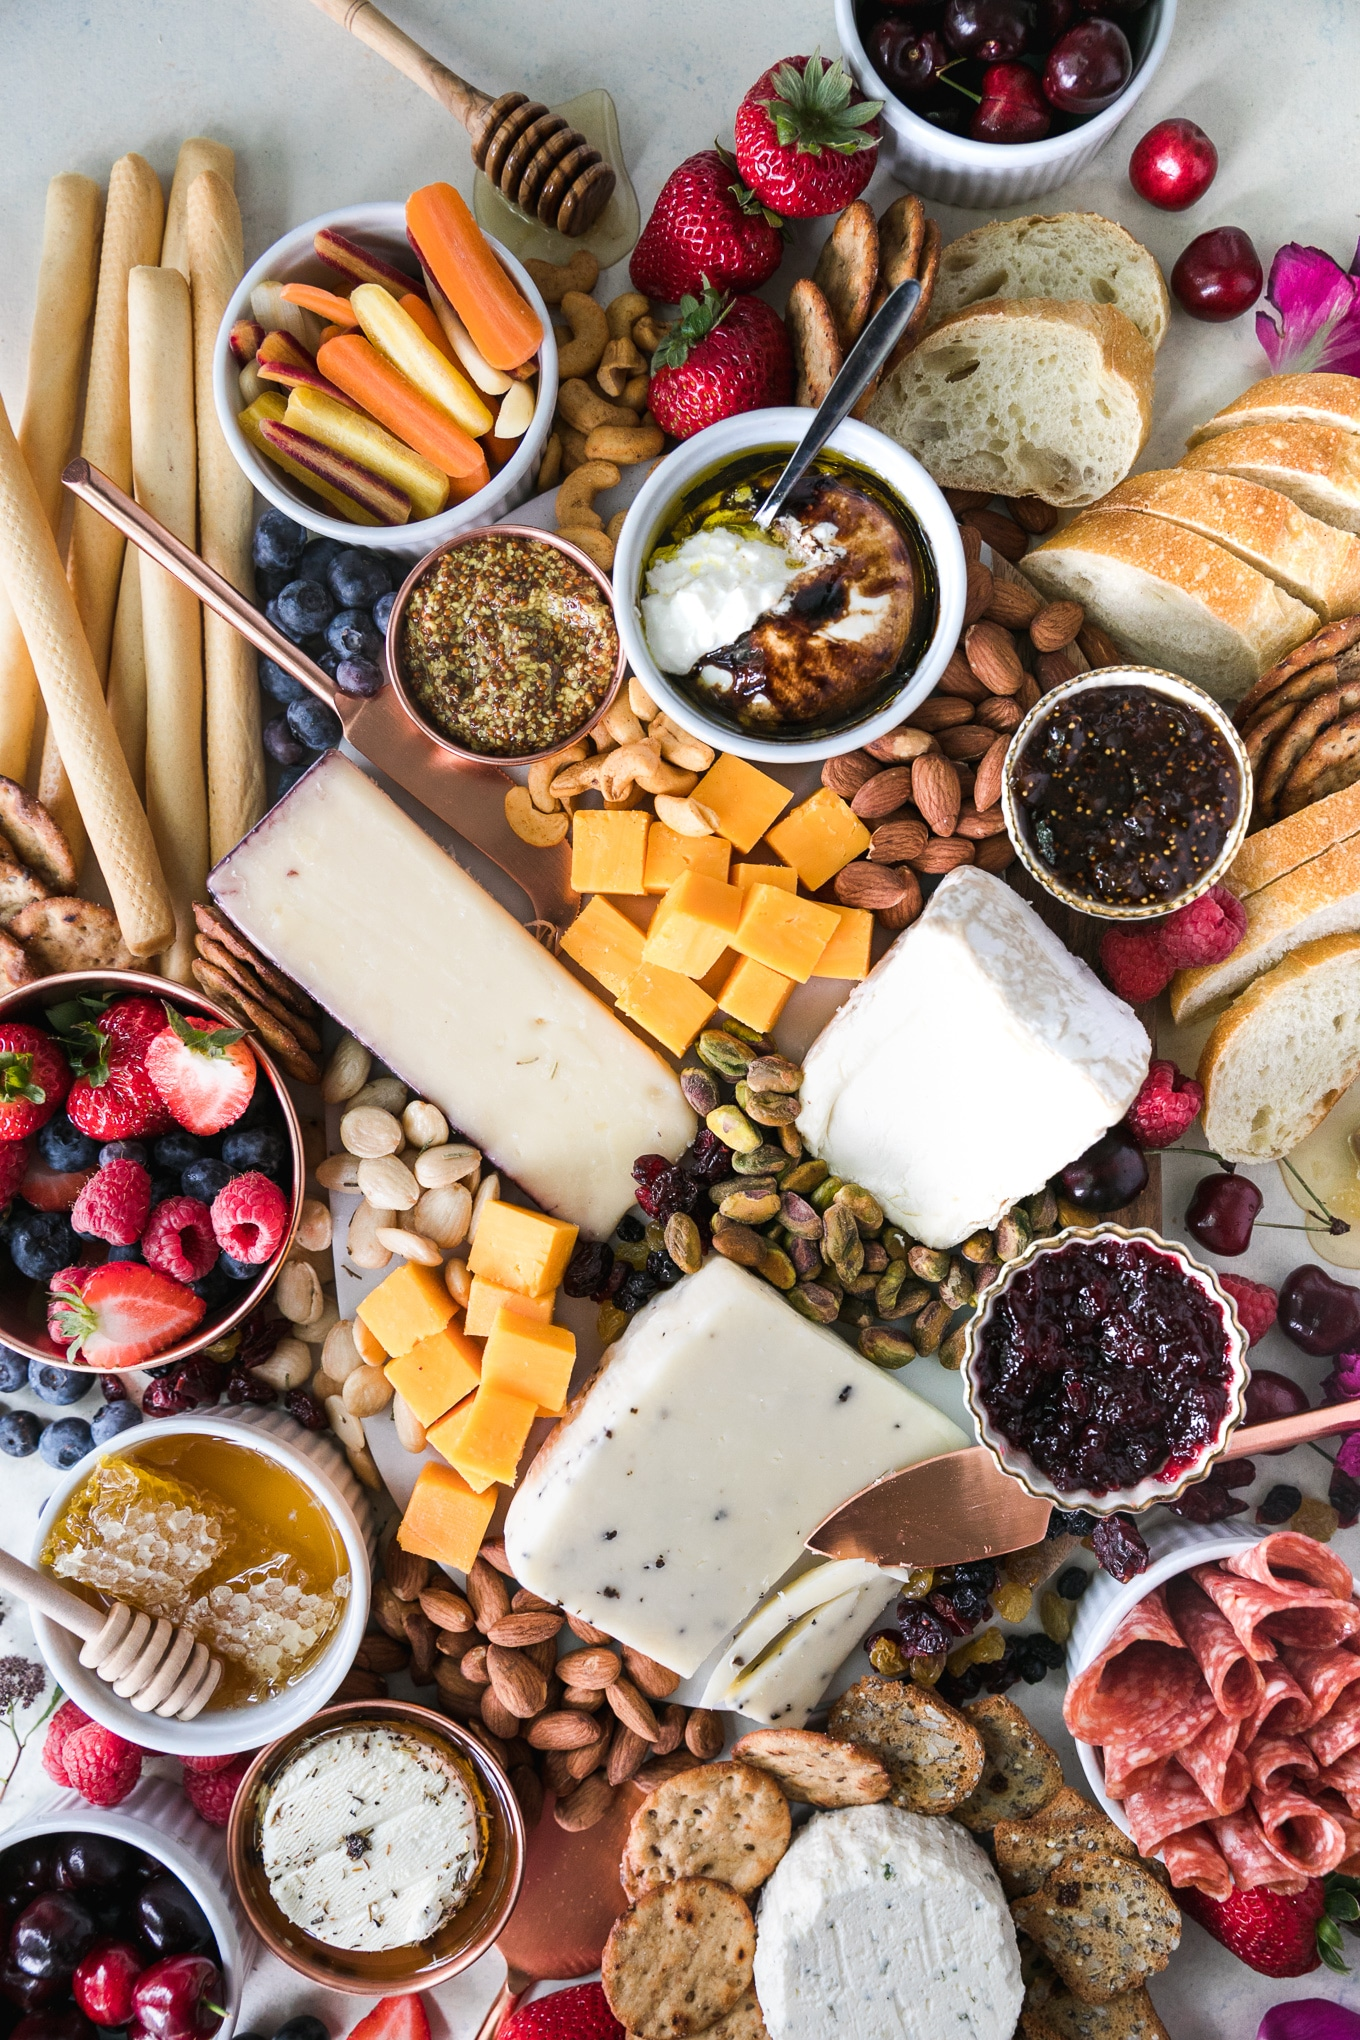 Overhead shot of a cheeseboard with various cheese, nuts, honey, preserves, honey, salami, crackers, bread, and fresh berries